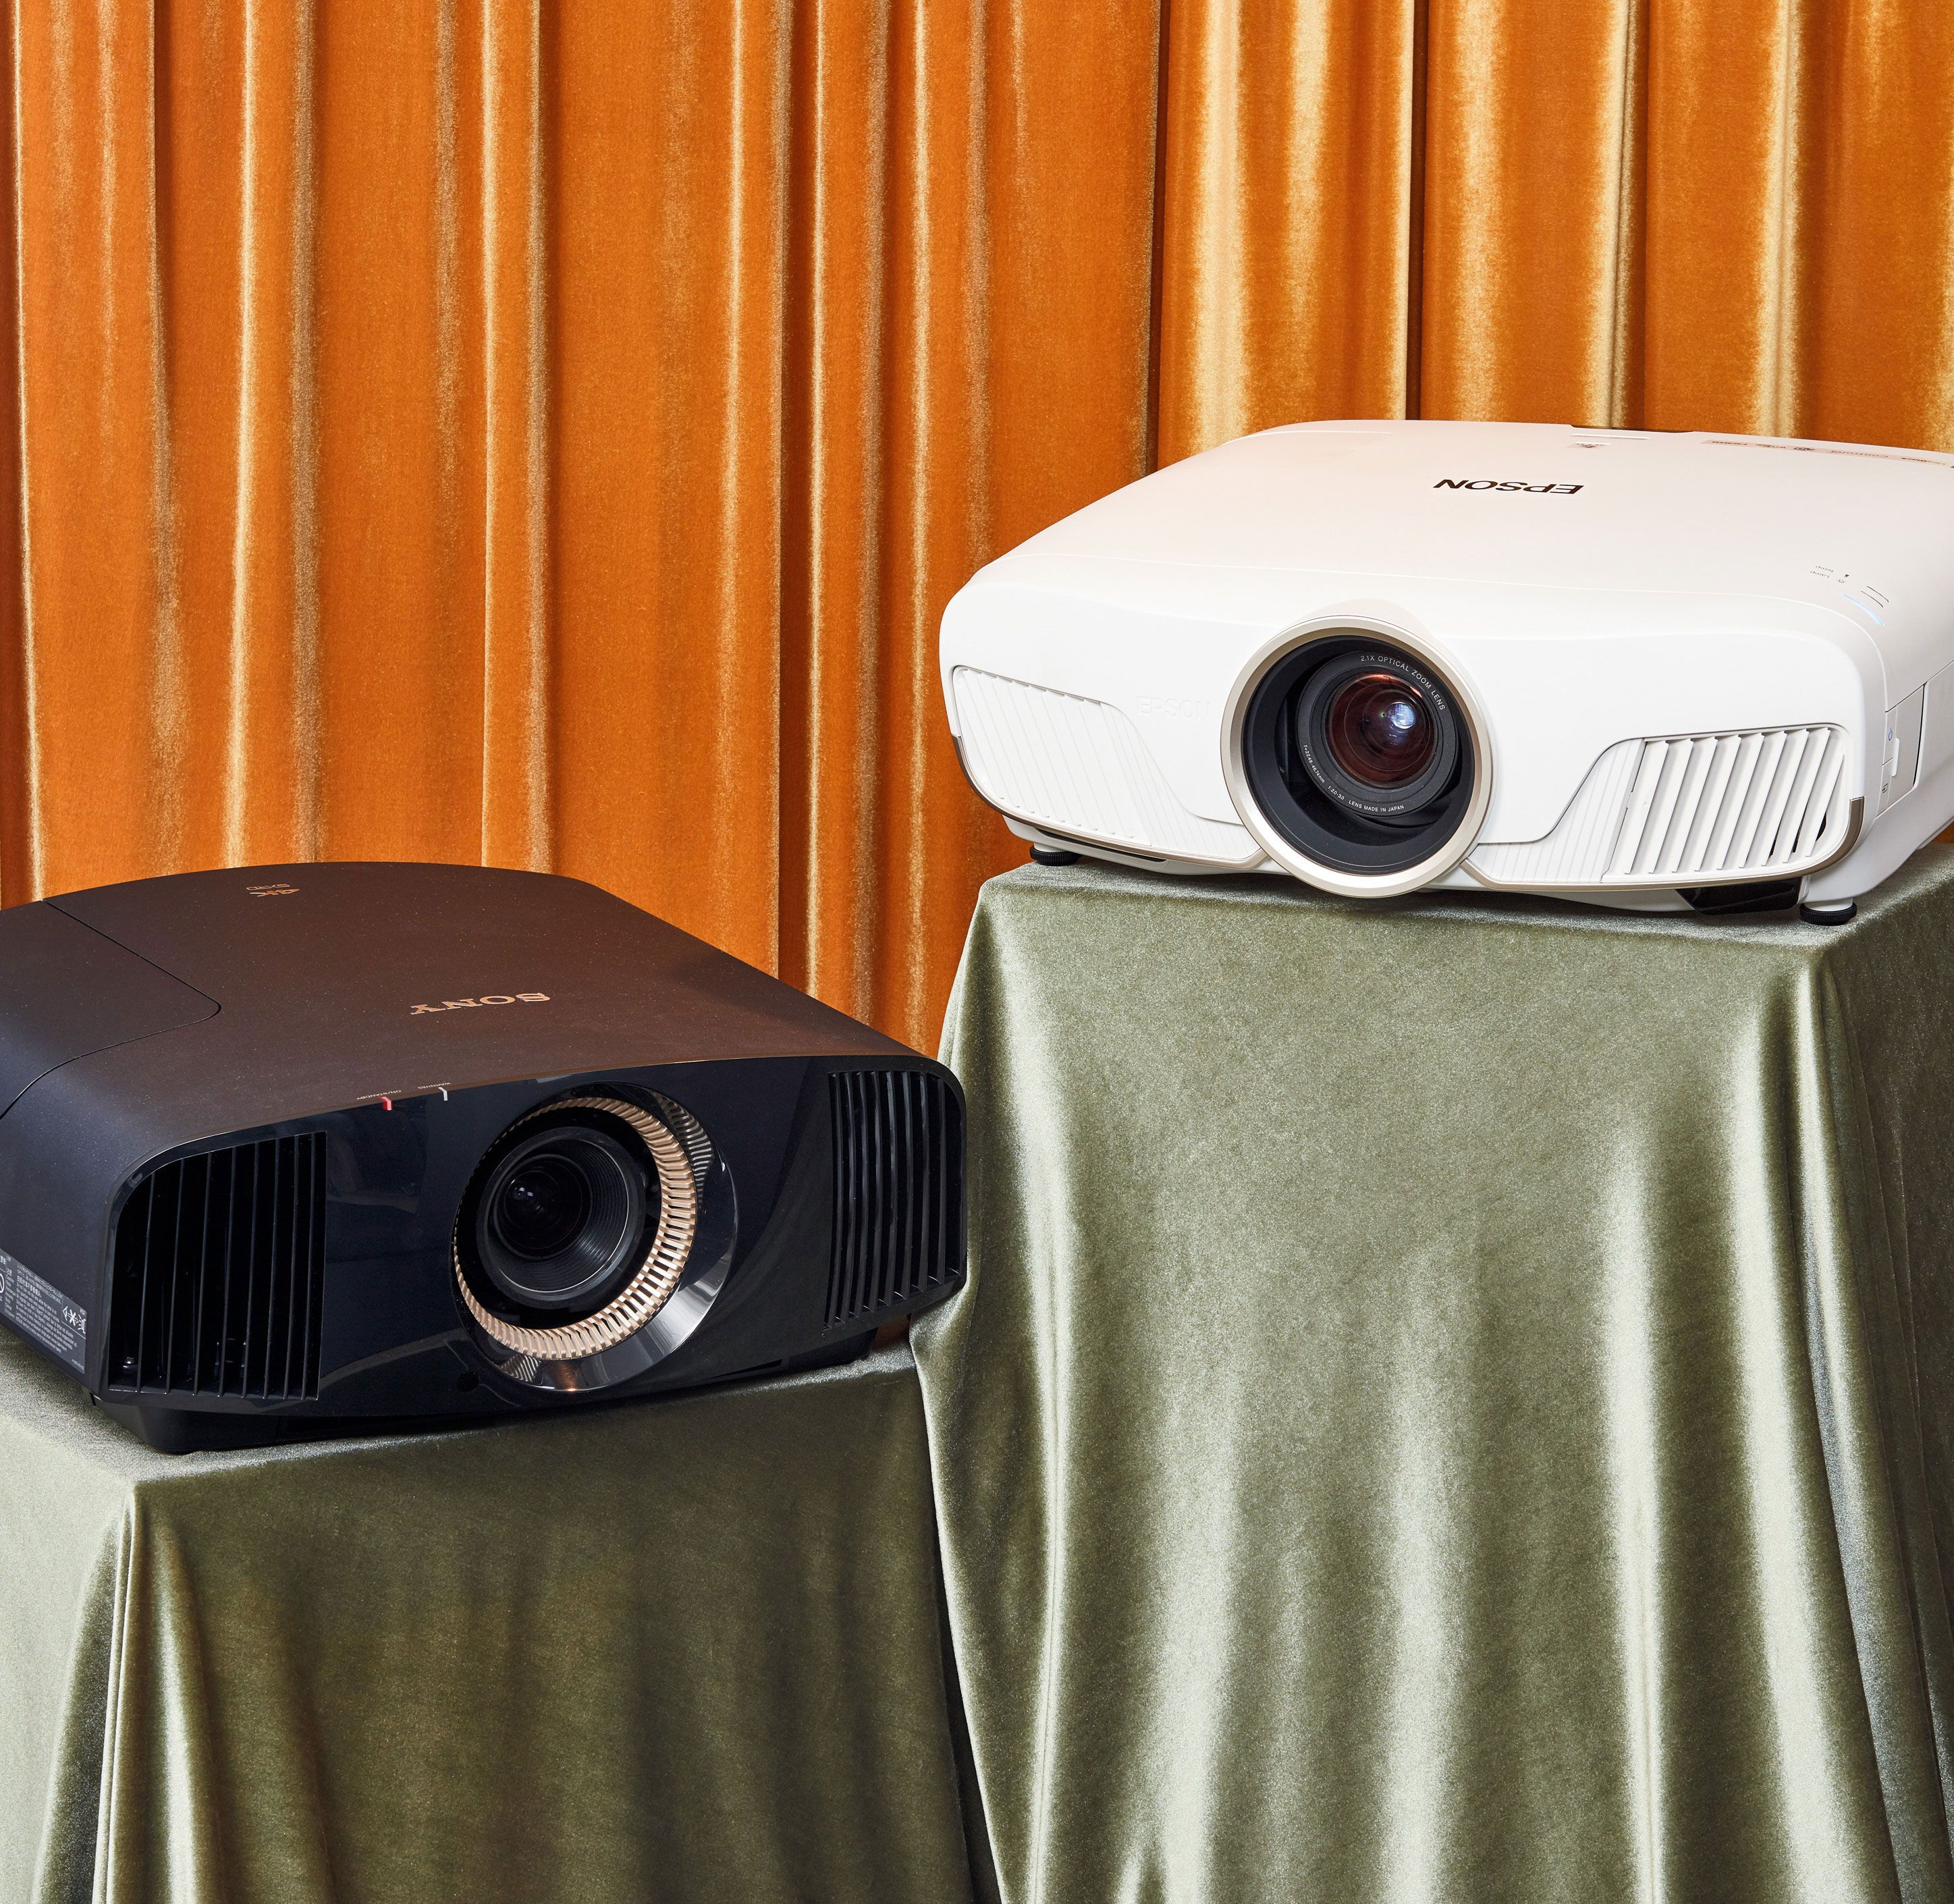 hight resolution of home theater wiring articles 2 killer projectors for your home theater hometheater wiringarticles